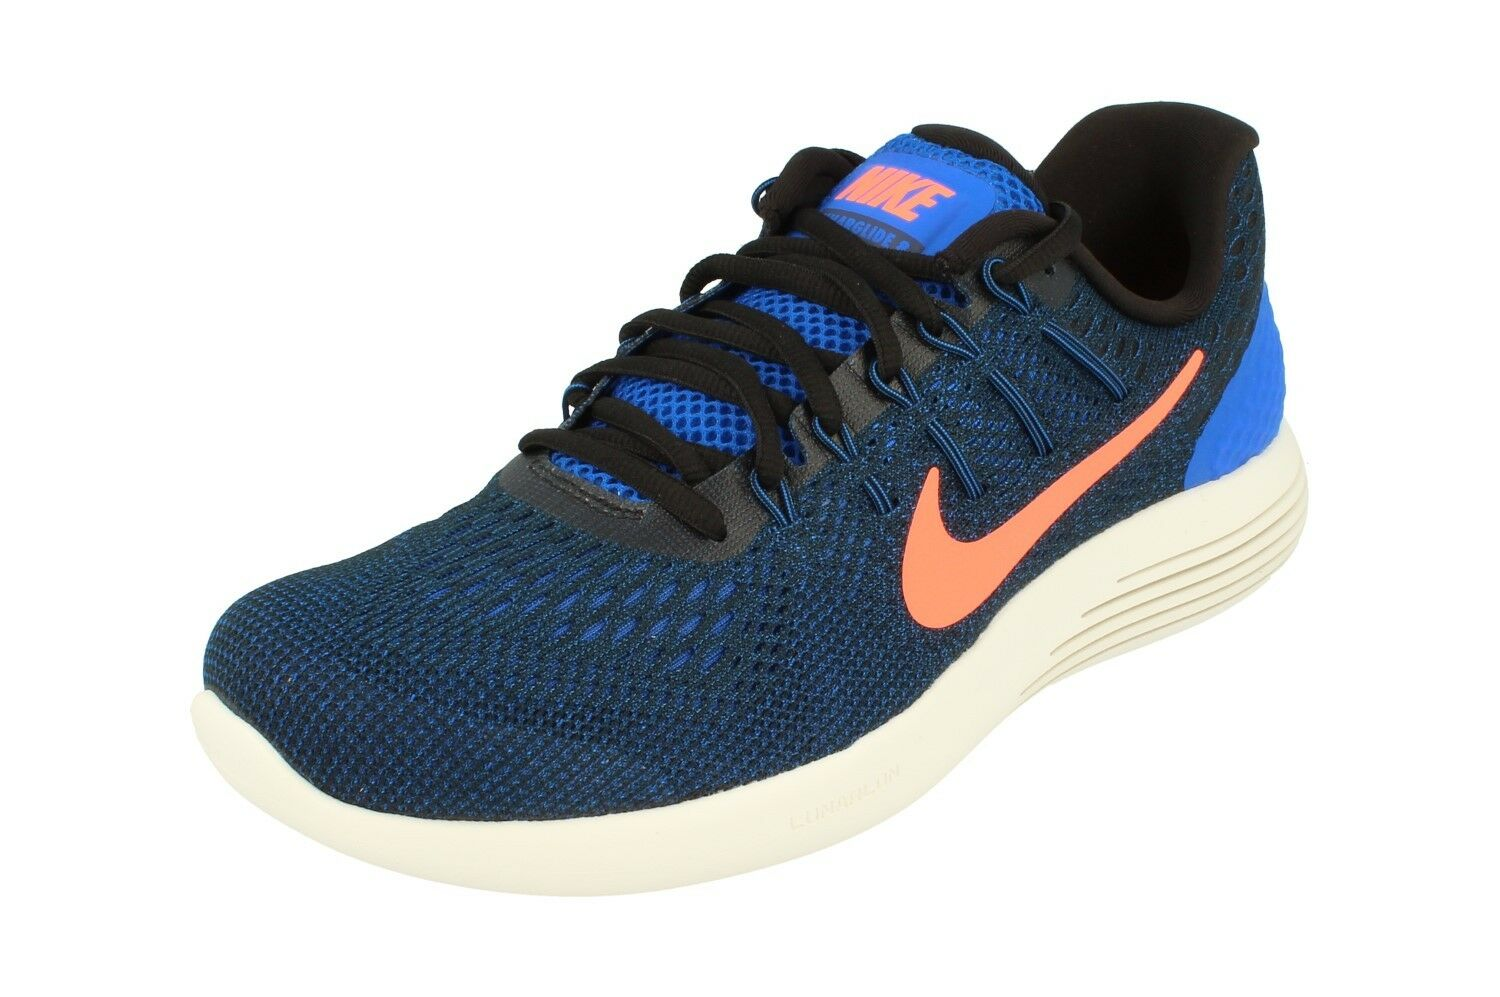 Nike Lunarglide Mens 8 Mens Lunarglide Running Trainers 843725 Sneakers Shoes 402 43653b